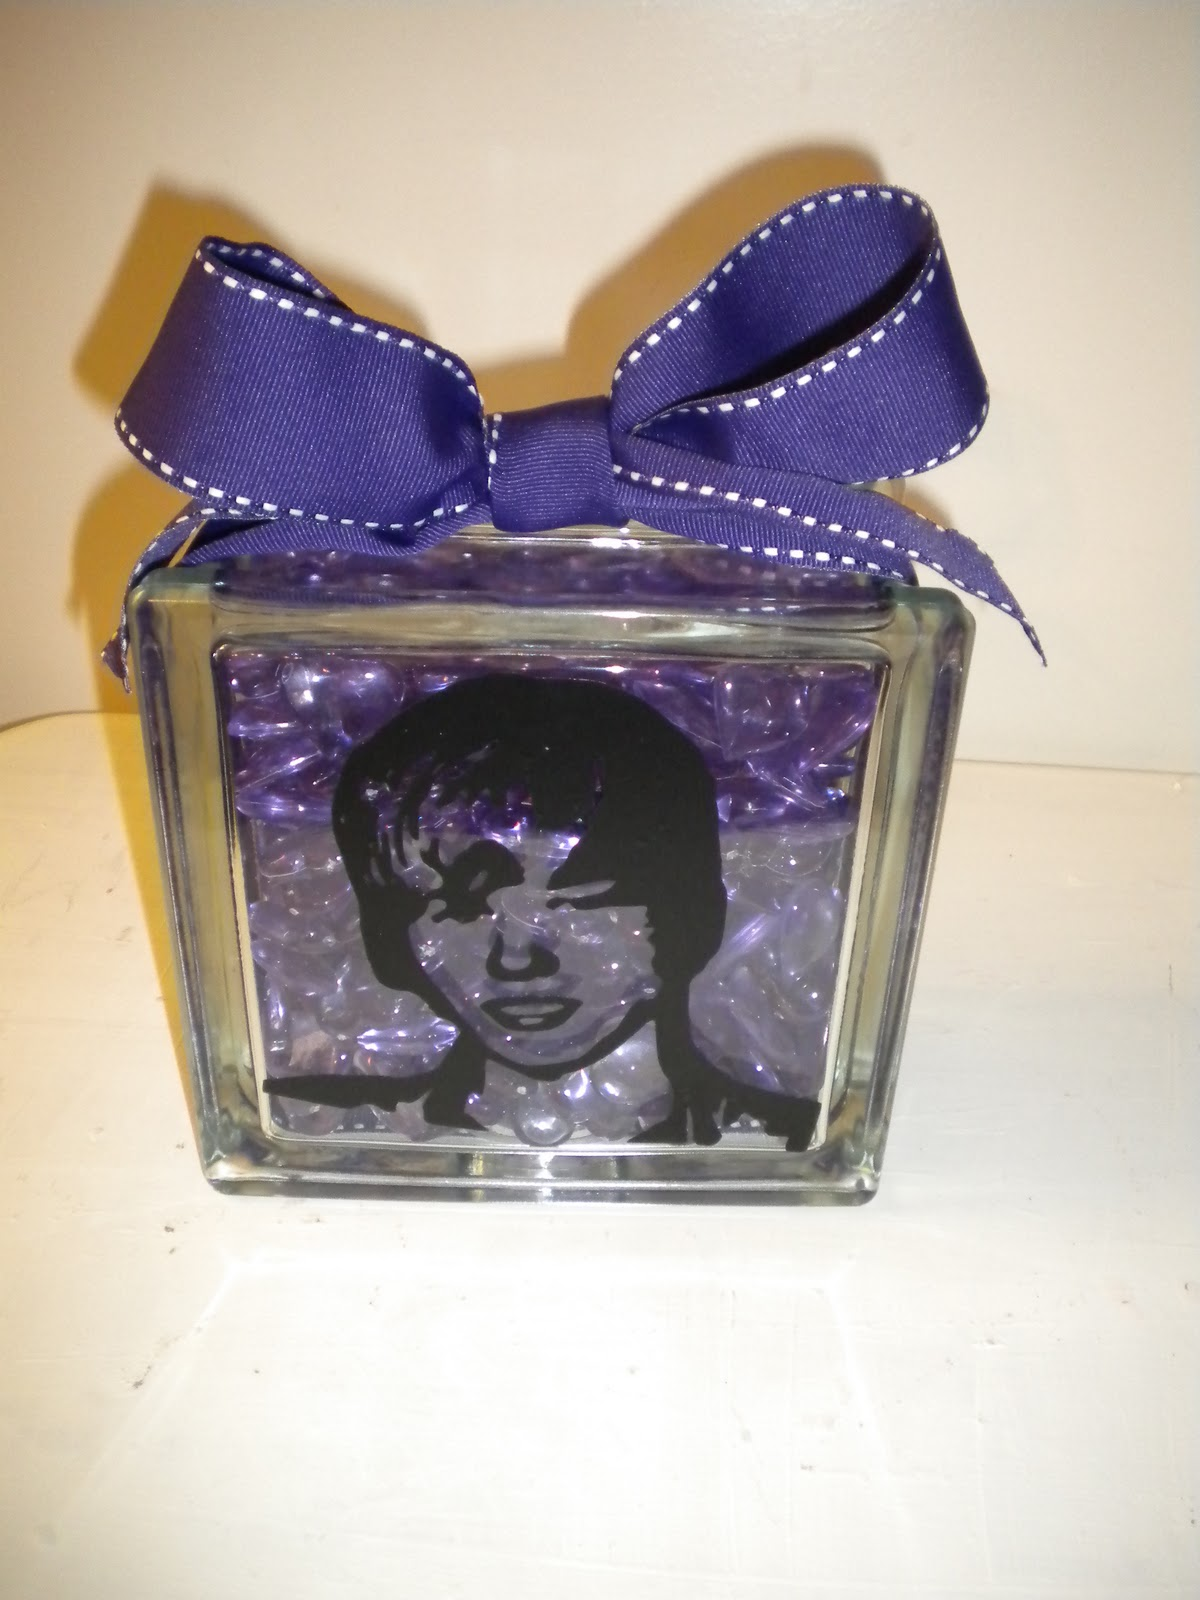 Justin bieber scrapbook ideas - Here Is The Glass Block That I Made Her I Put Justin On The Front And Then Used The Ariel Font To Put Bieber Fever On The Back Of The Block